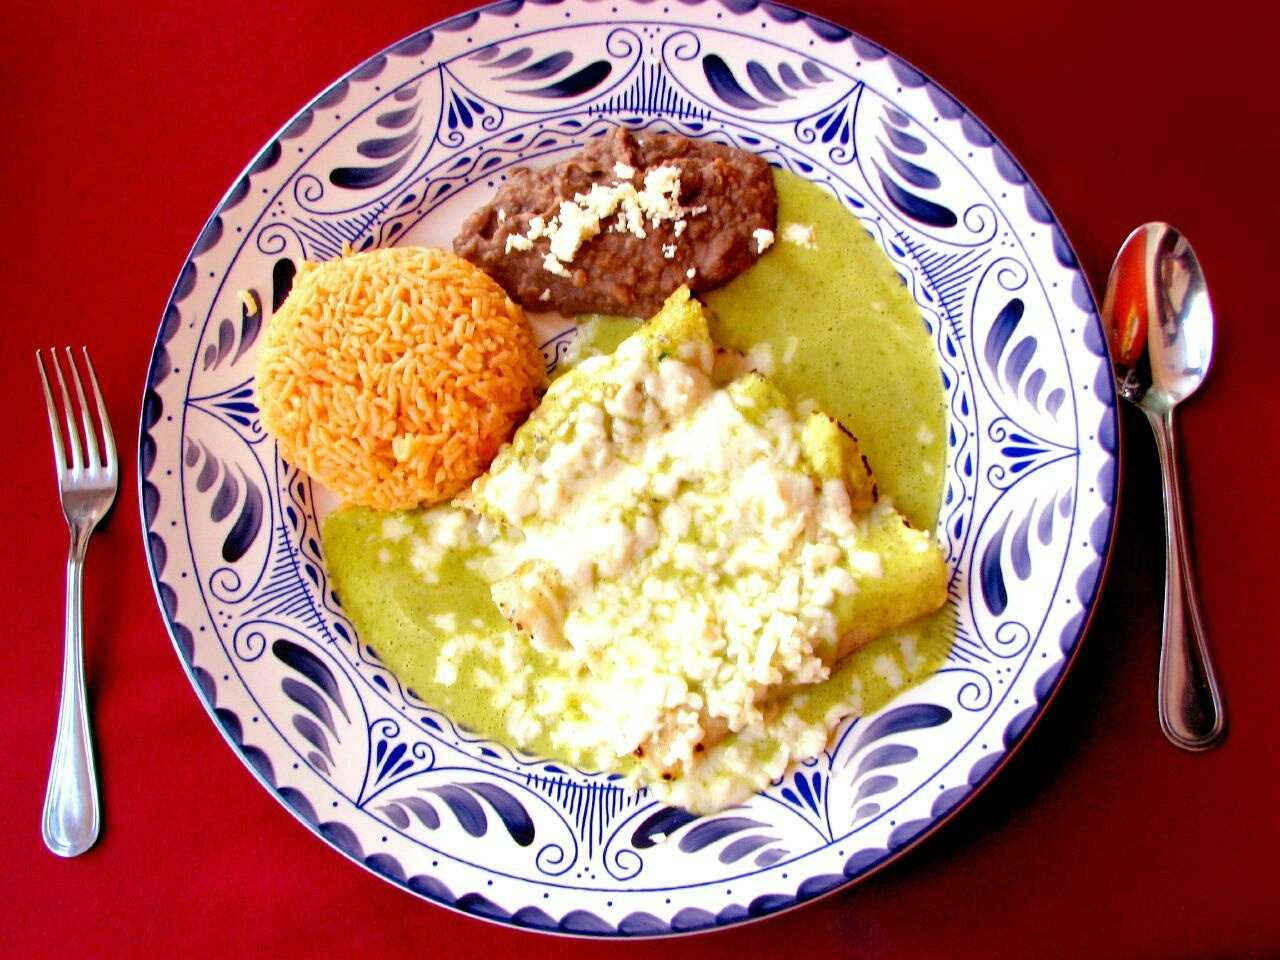 Chicken Enchiladas With Rice And Beans Served In Plate